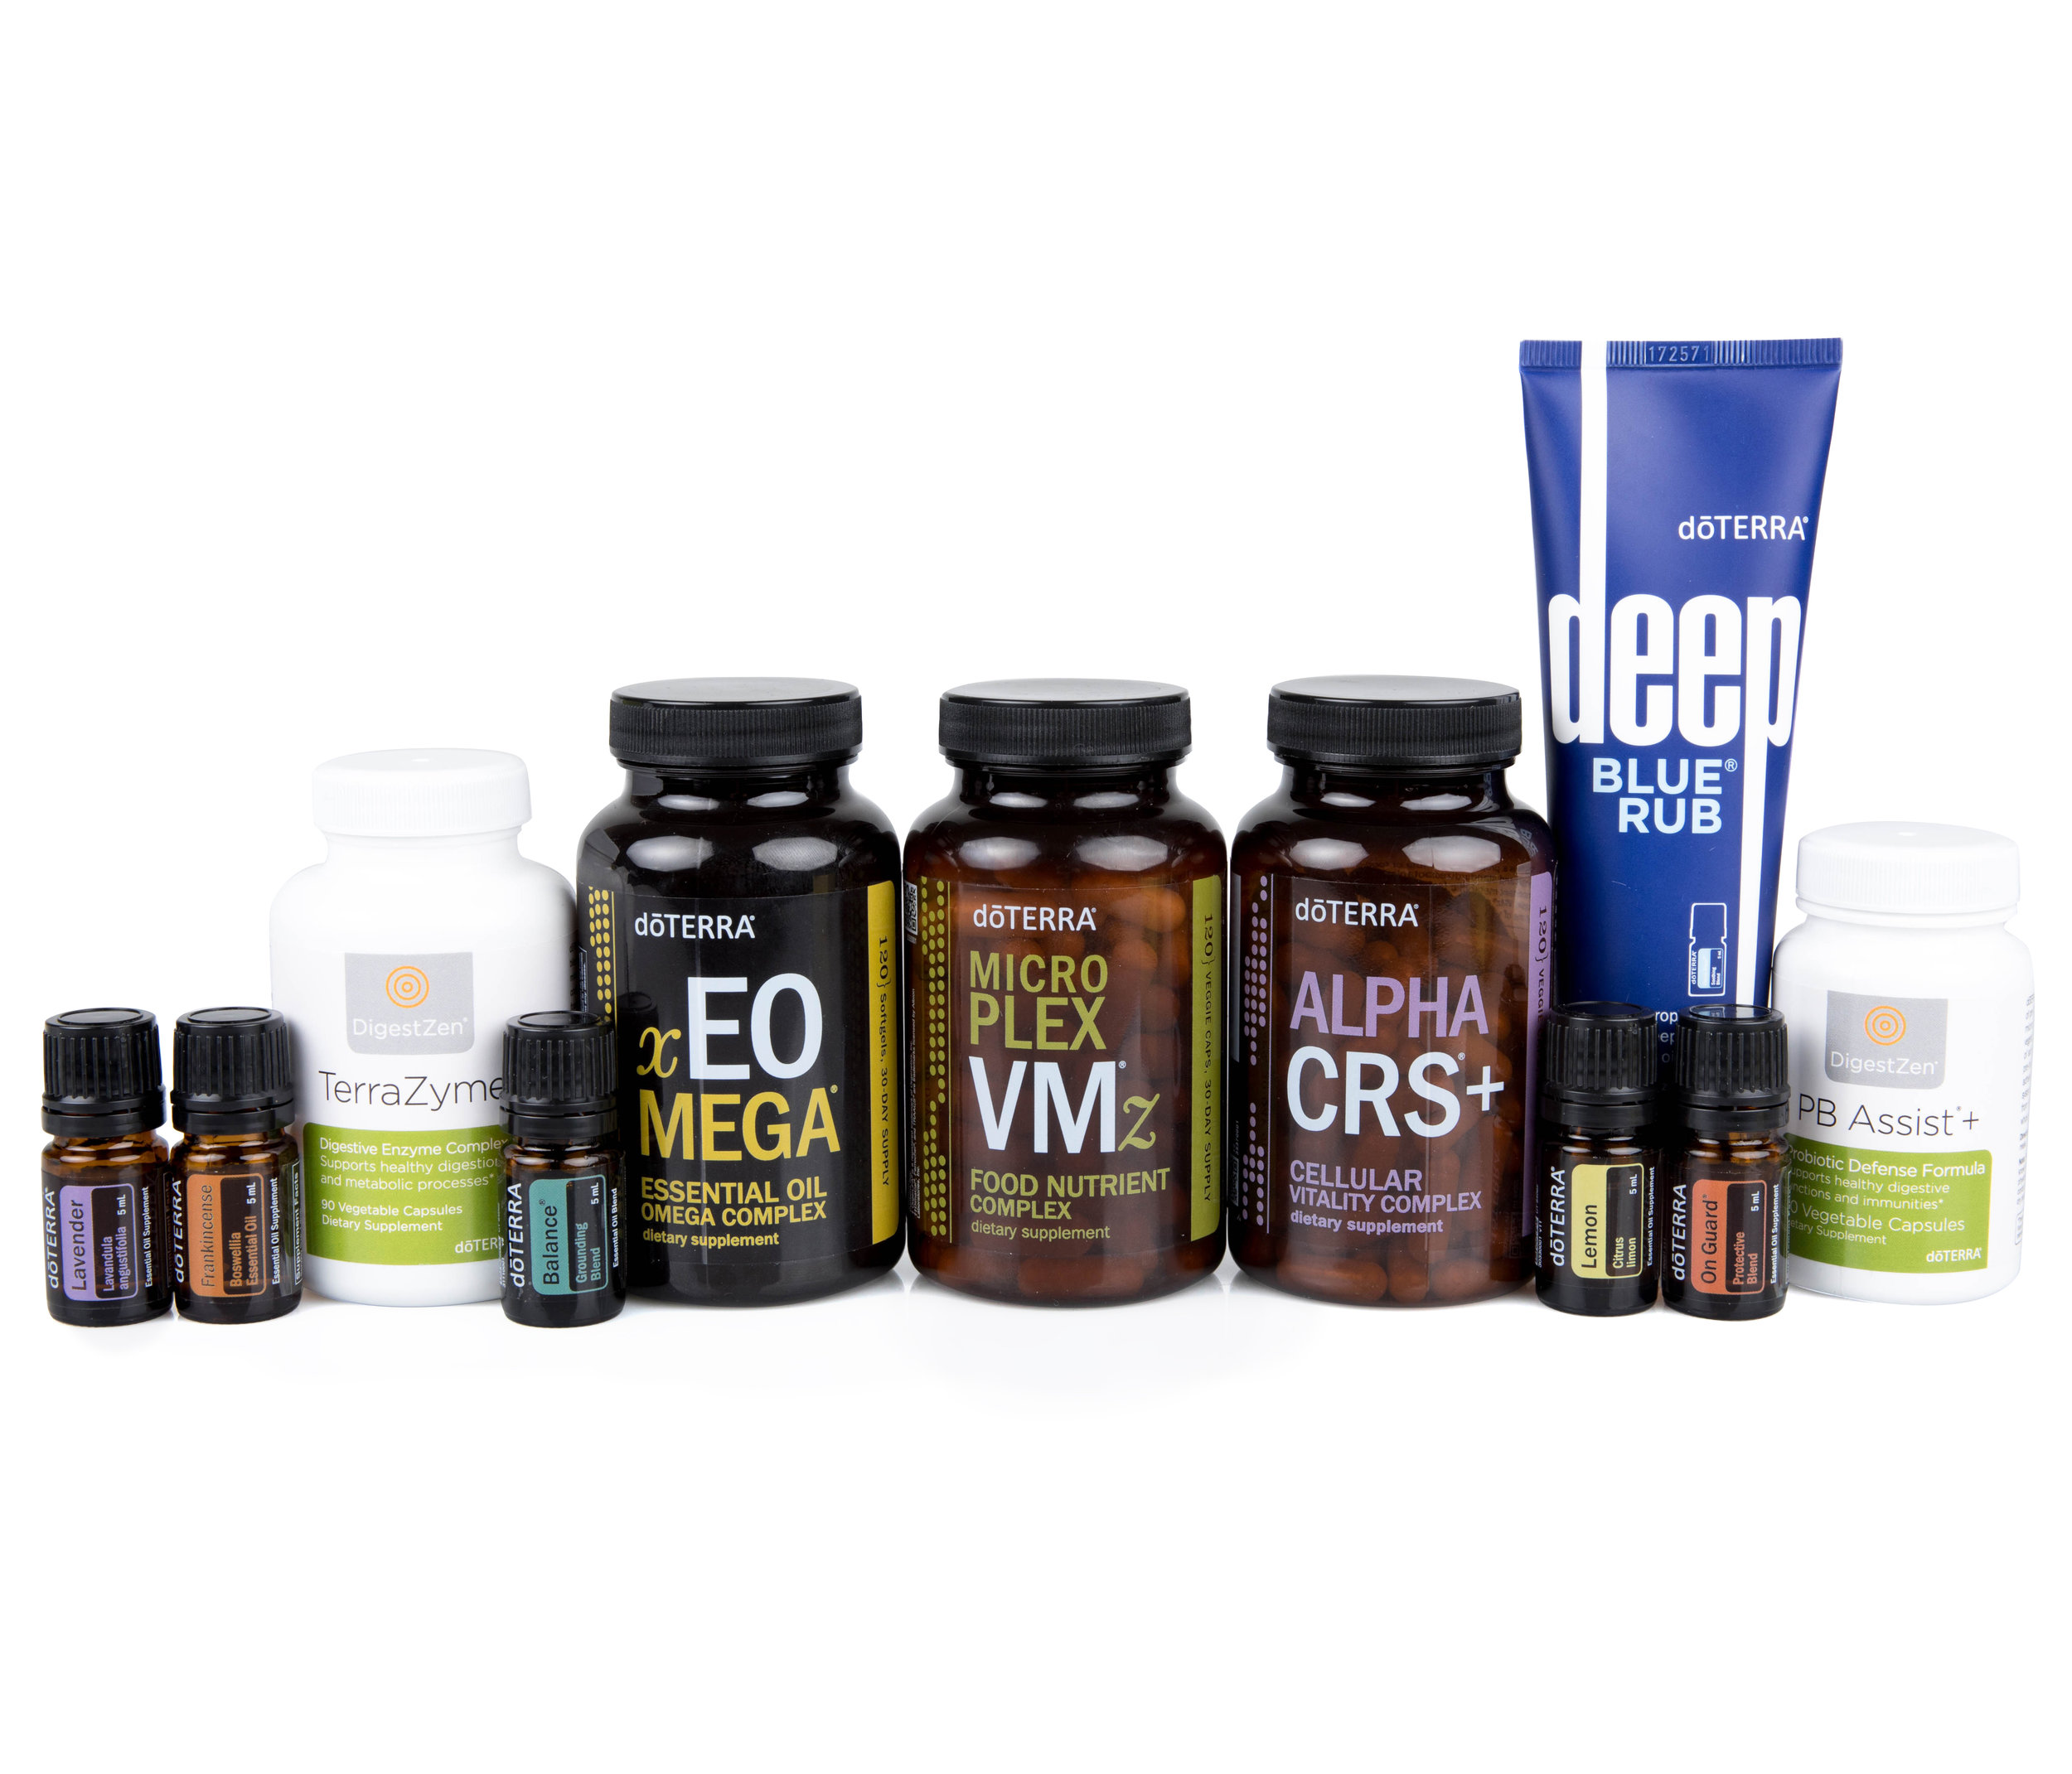 Why doTERRA and why now… - doTERRA has brought opportunity. I struggled with seeing people use essential oils improperly and wanted to place my foot print on the side of education. doTERRA will allow me to share my knowledge with a vast group of like minded individuals that will also be able to Pay-It-Forward and help others use essential oils to their fullest potential, safely and effectively. Plus, doTERRA just has some really awesome products! For a full run down of all the reasons why doTERRA is ONE of my go to companies that supplies my essential oils, CLICK HERE.